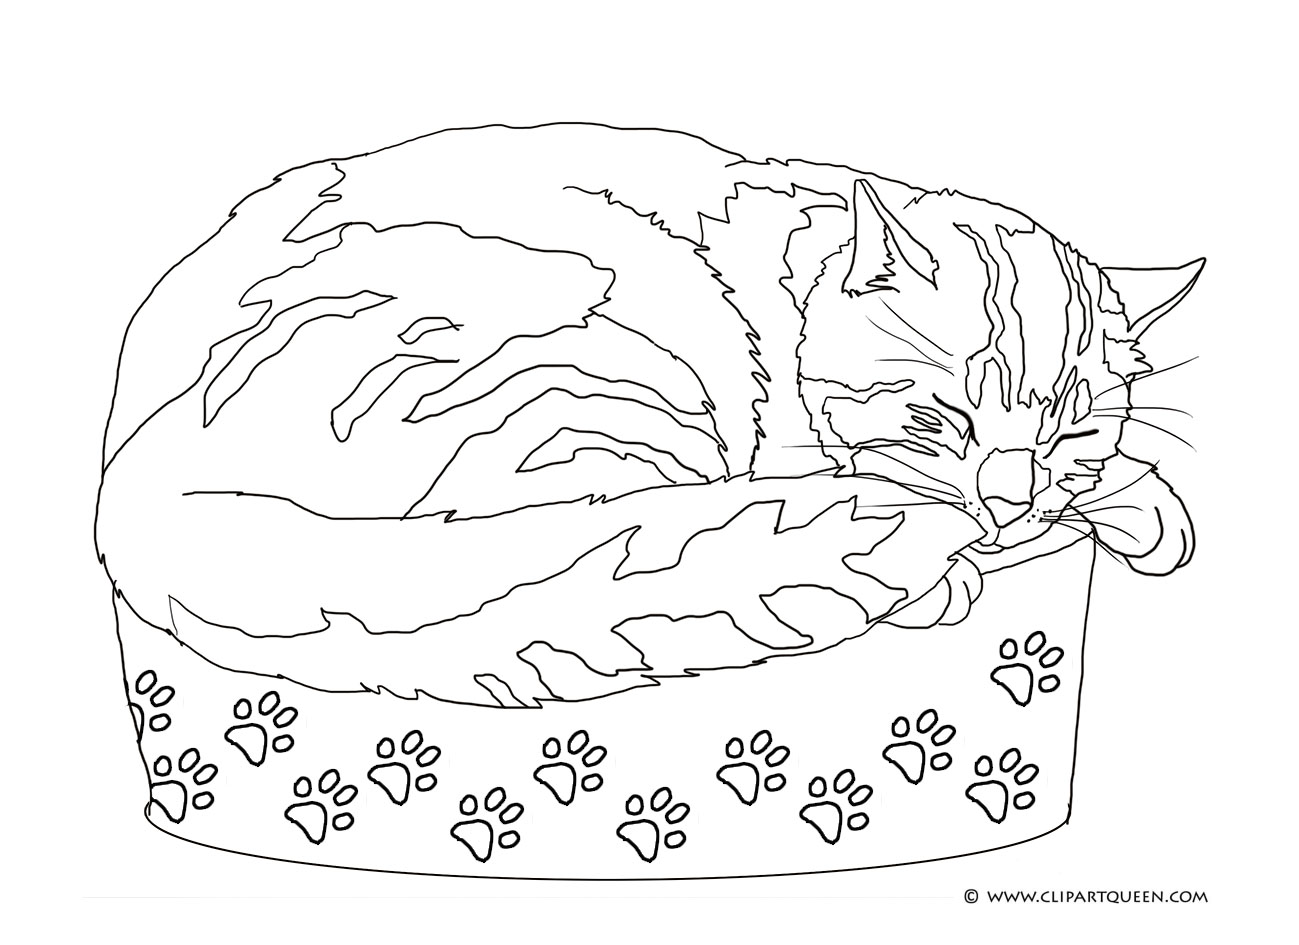 coloring page with sleeping cat